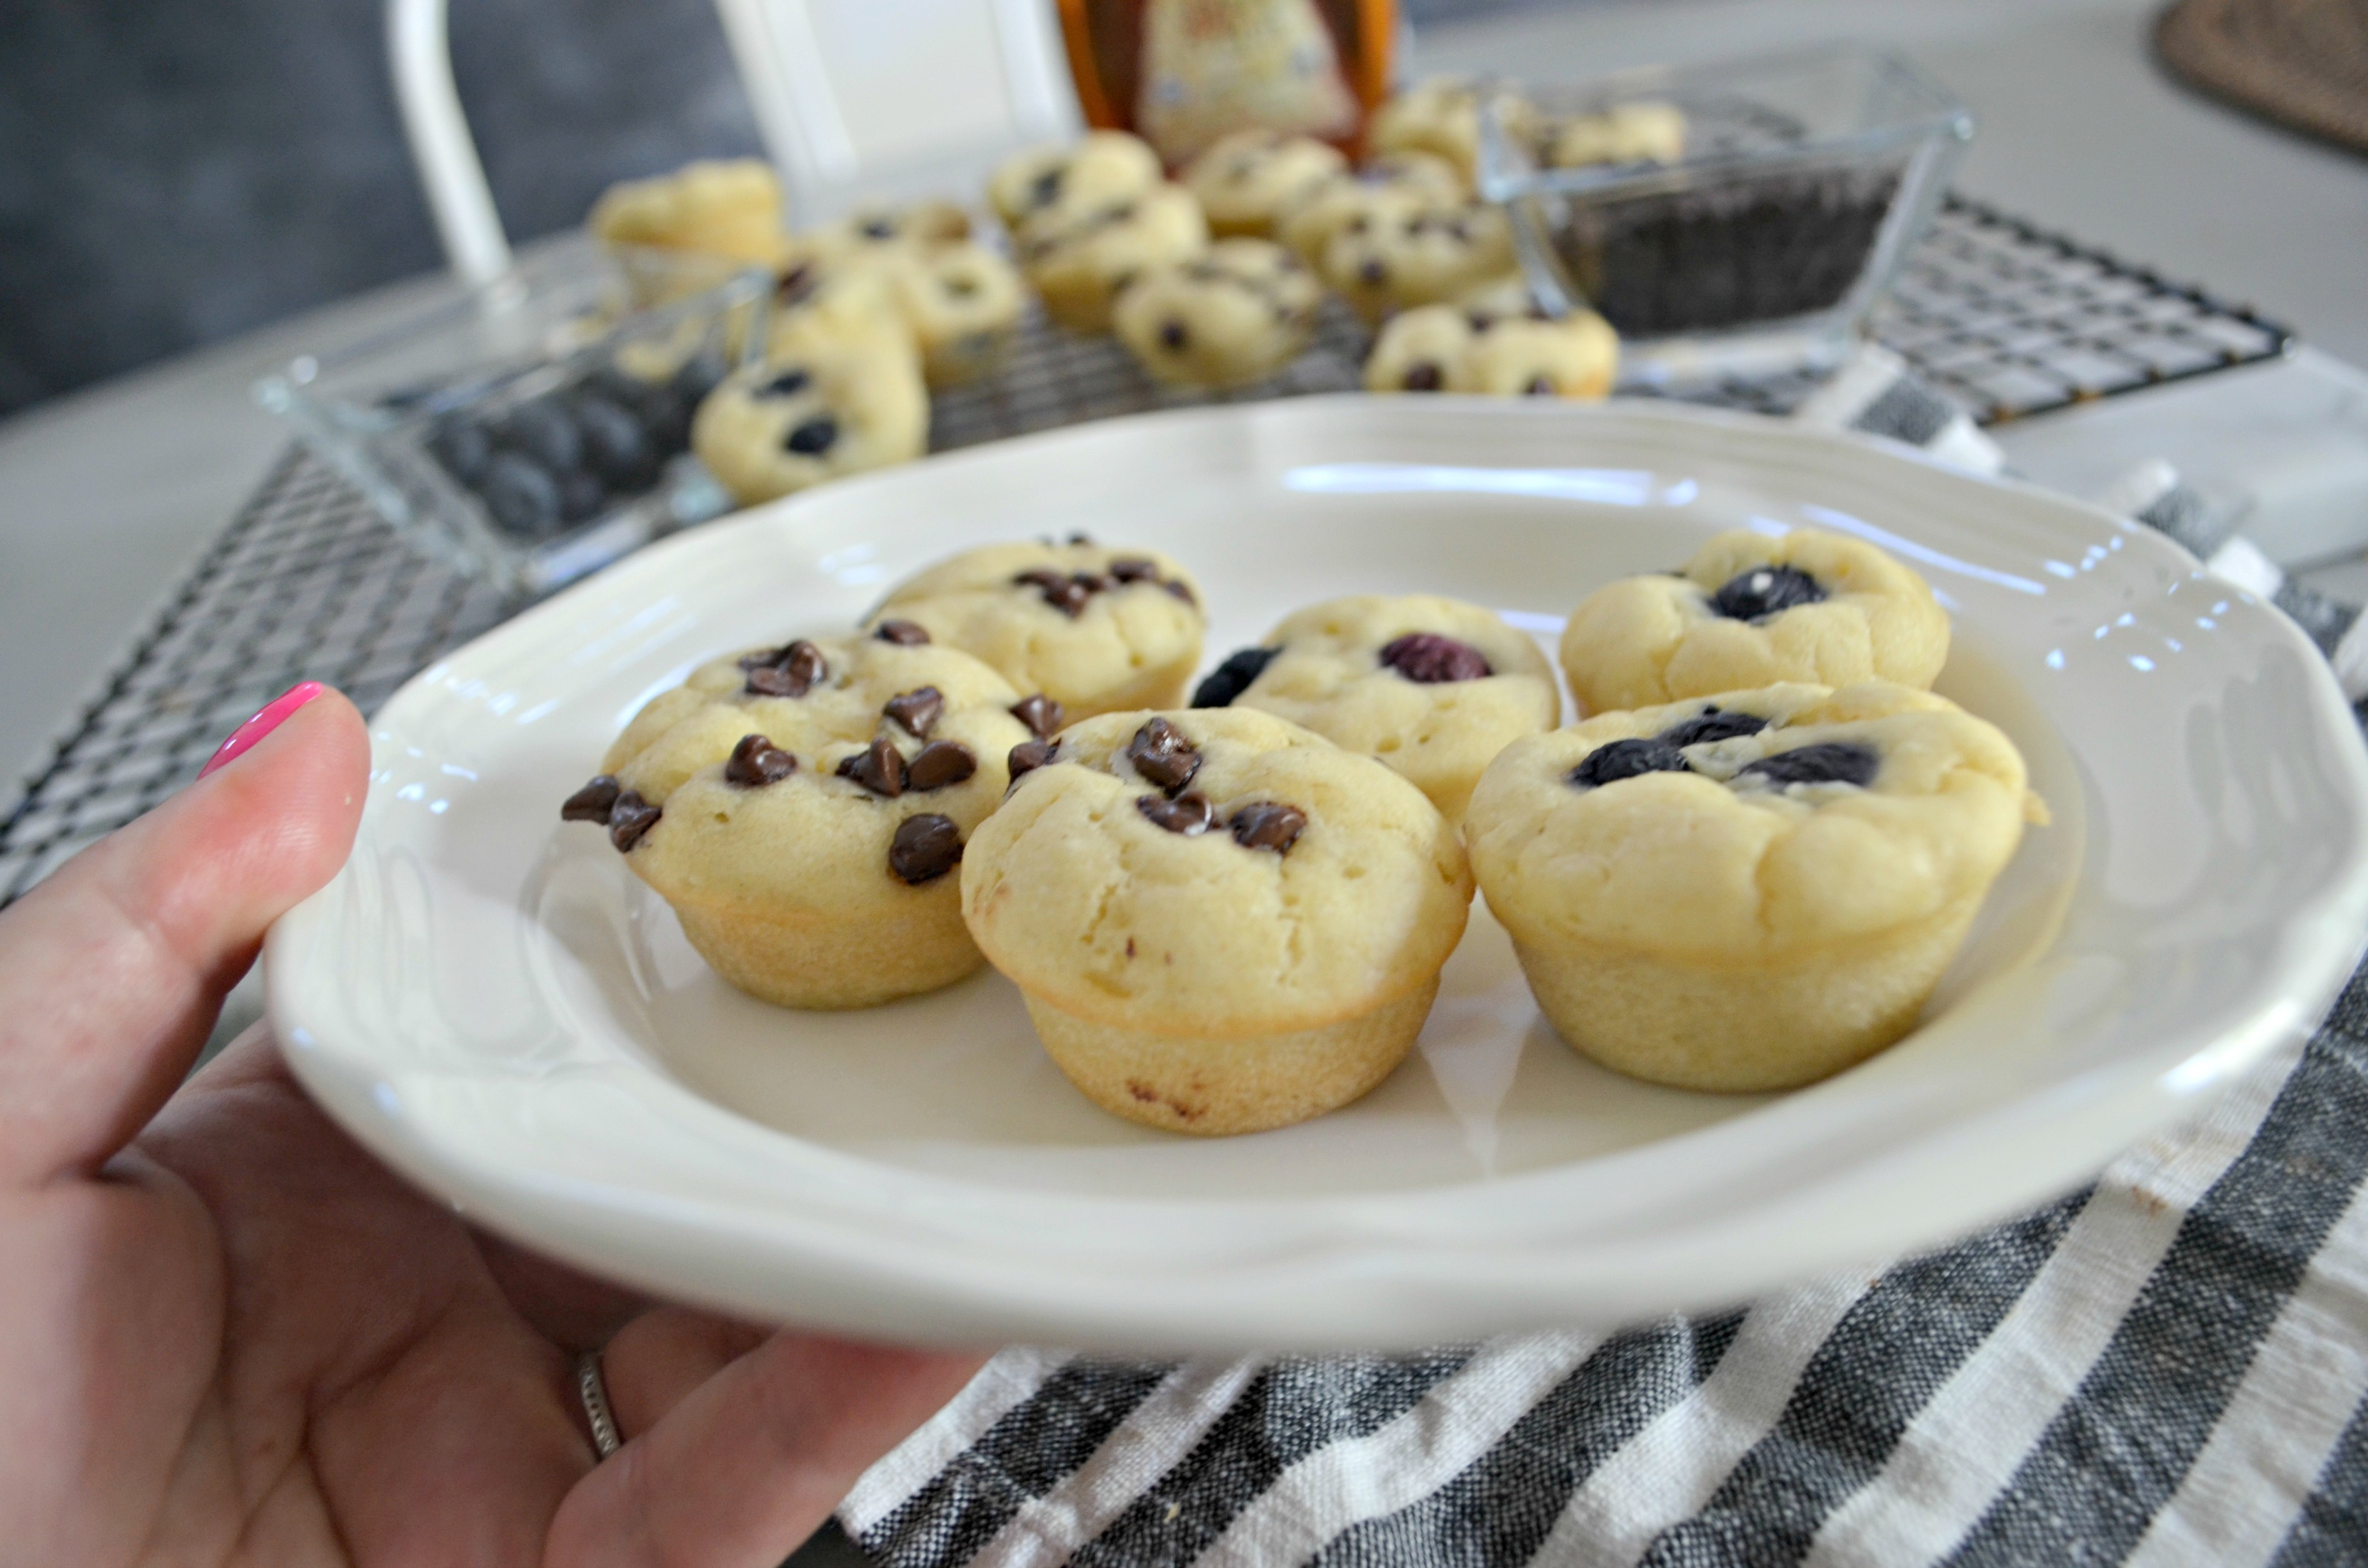 These gluten-free pancake bites are an easy breakfast idea – muffins on a plate